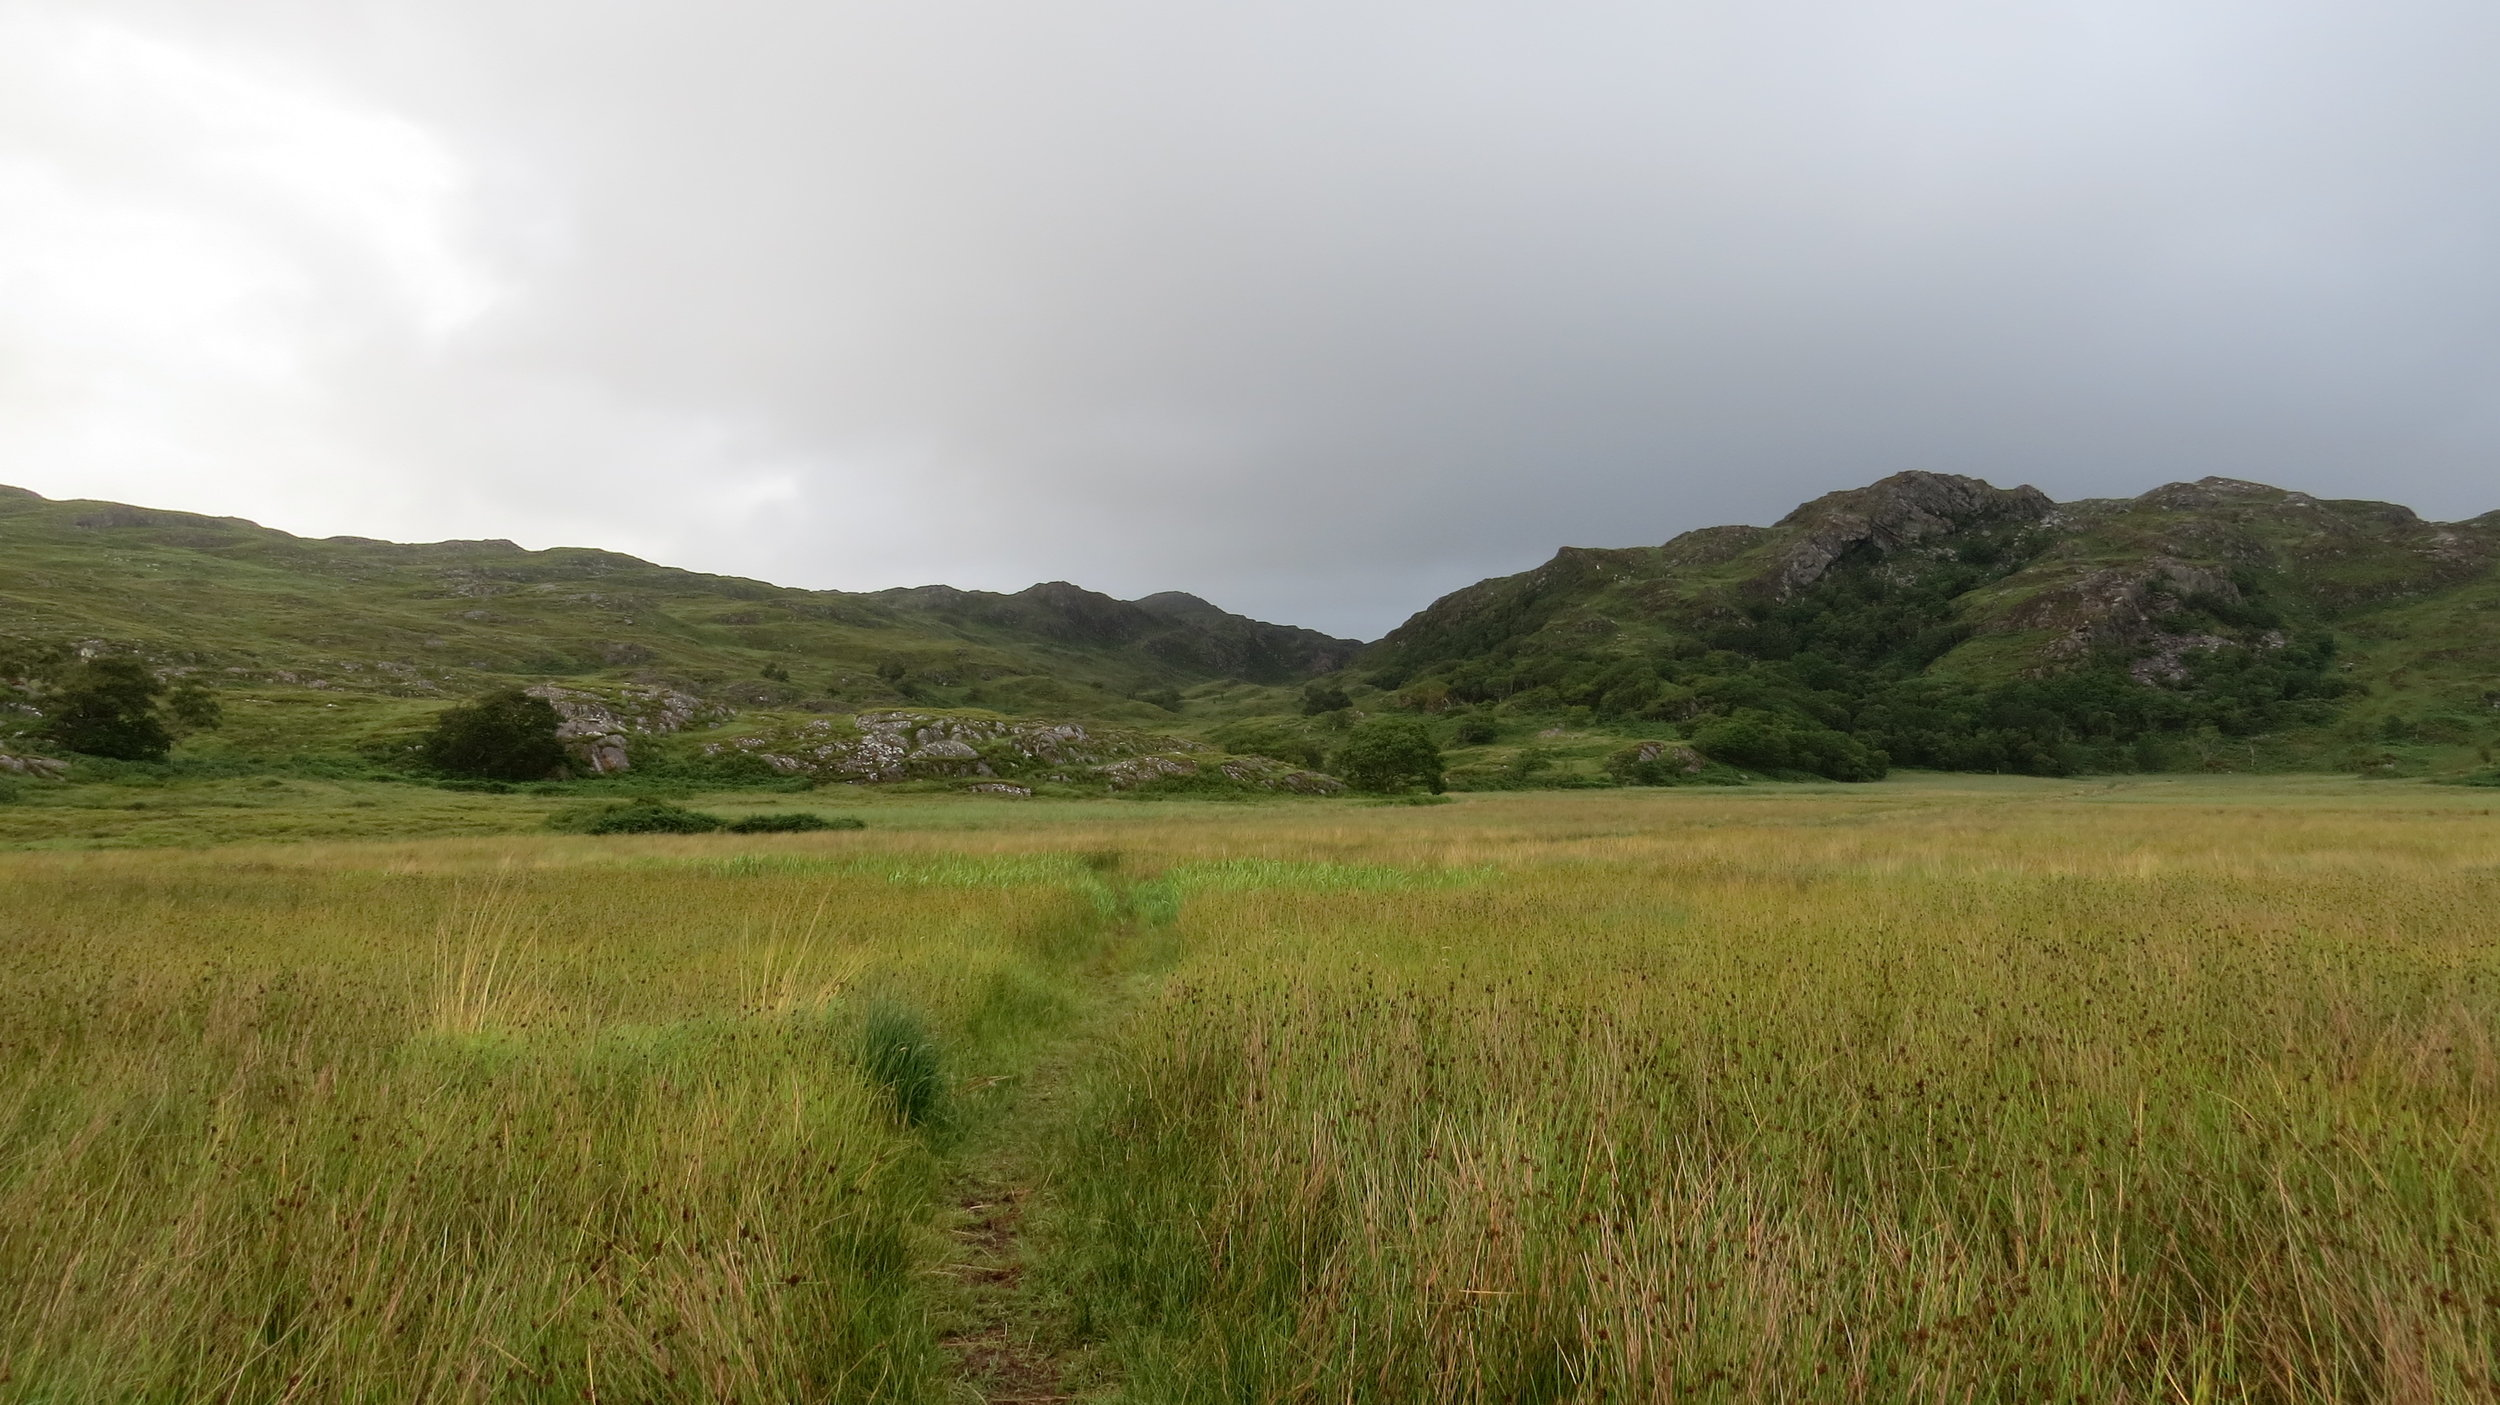 Walking away from the Bothy